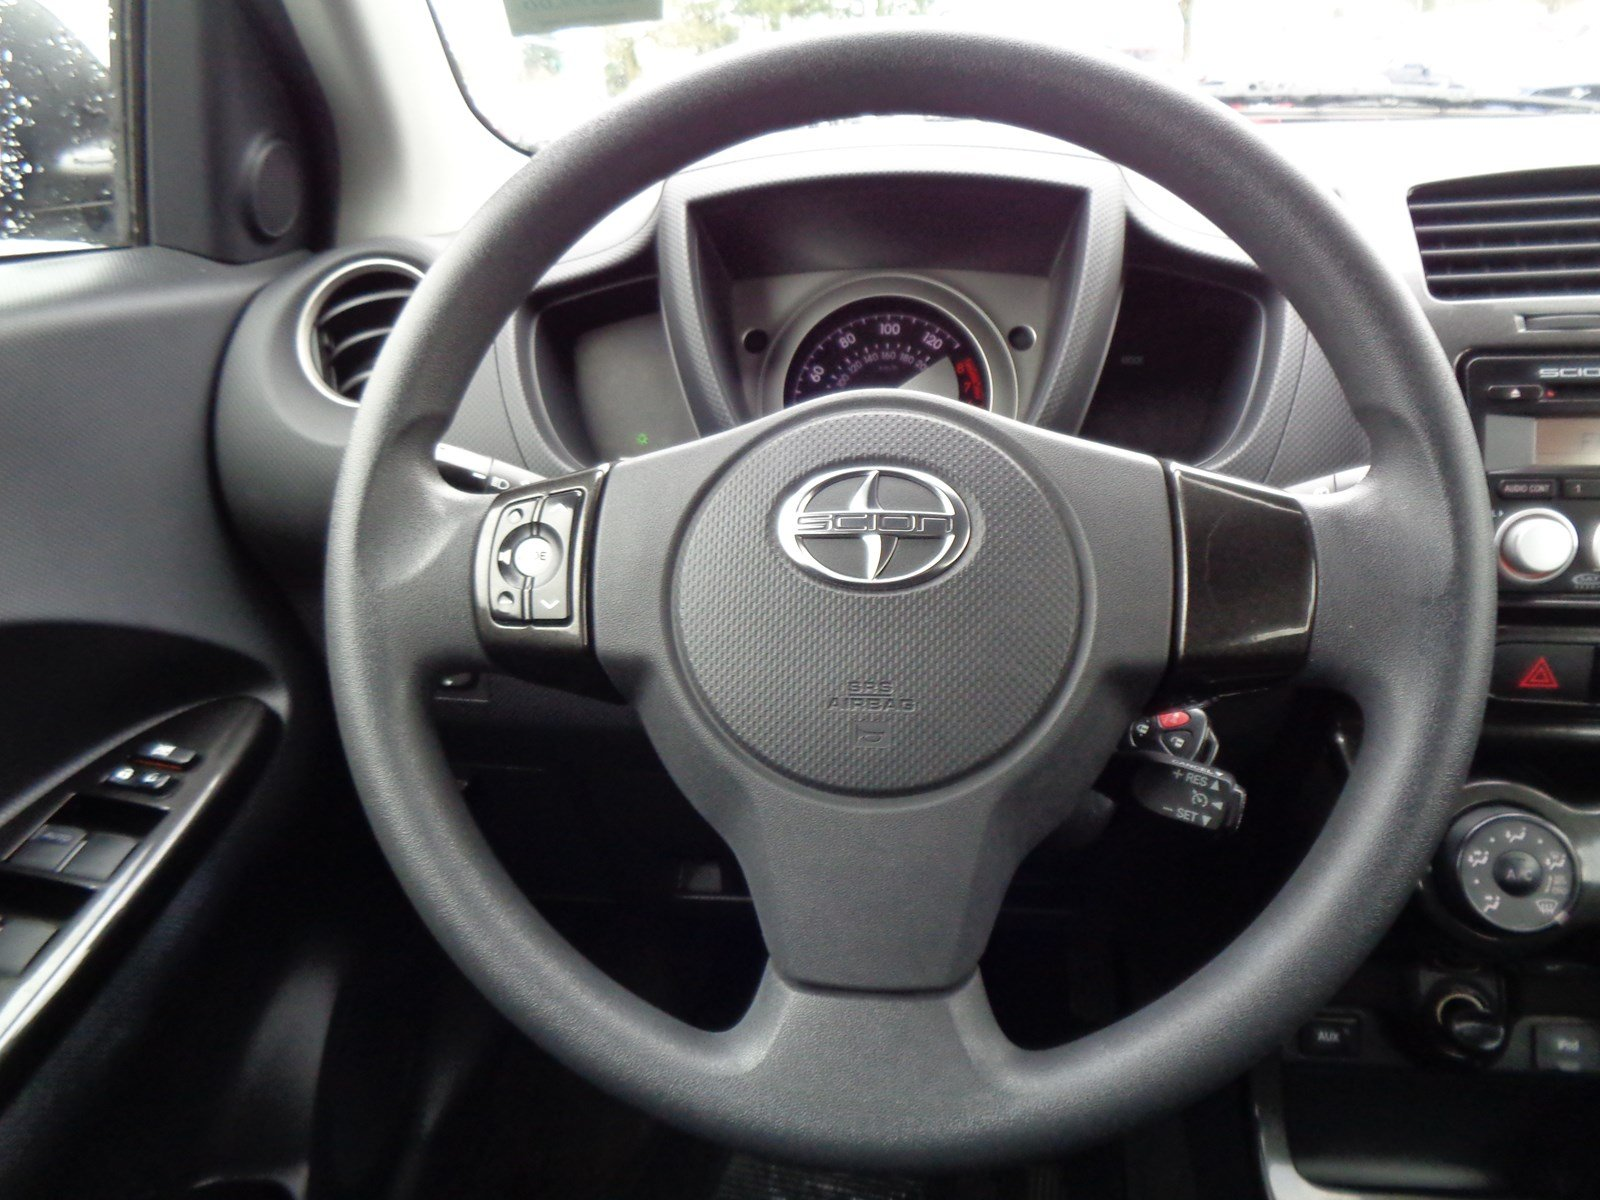 Pre-Owned 2008 Scion xD DARK STONE